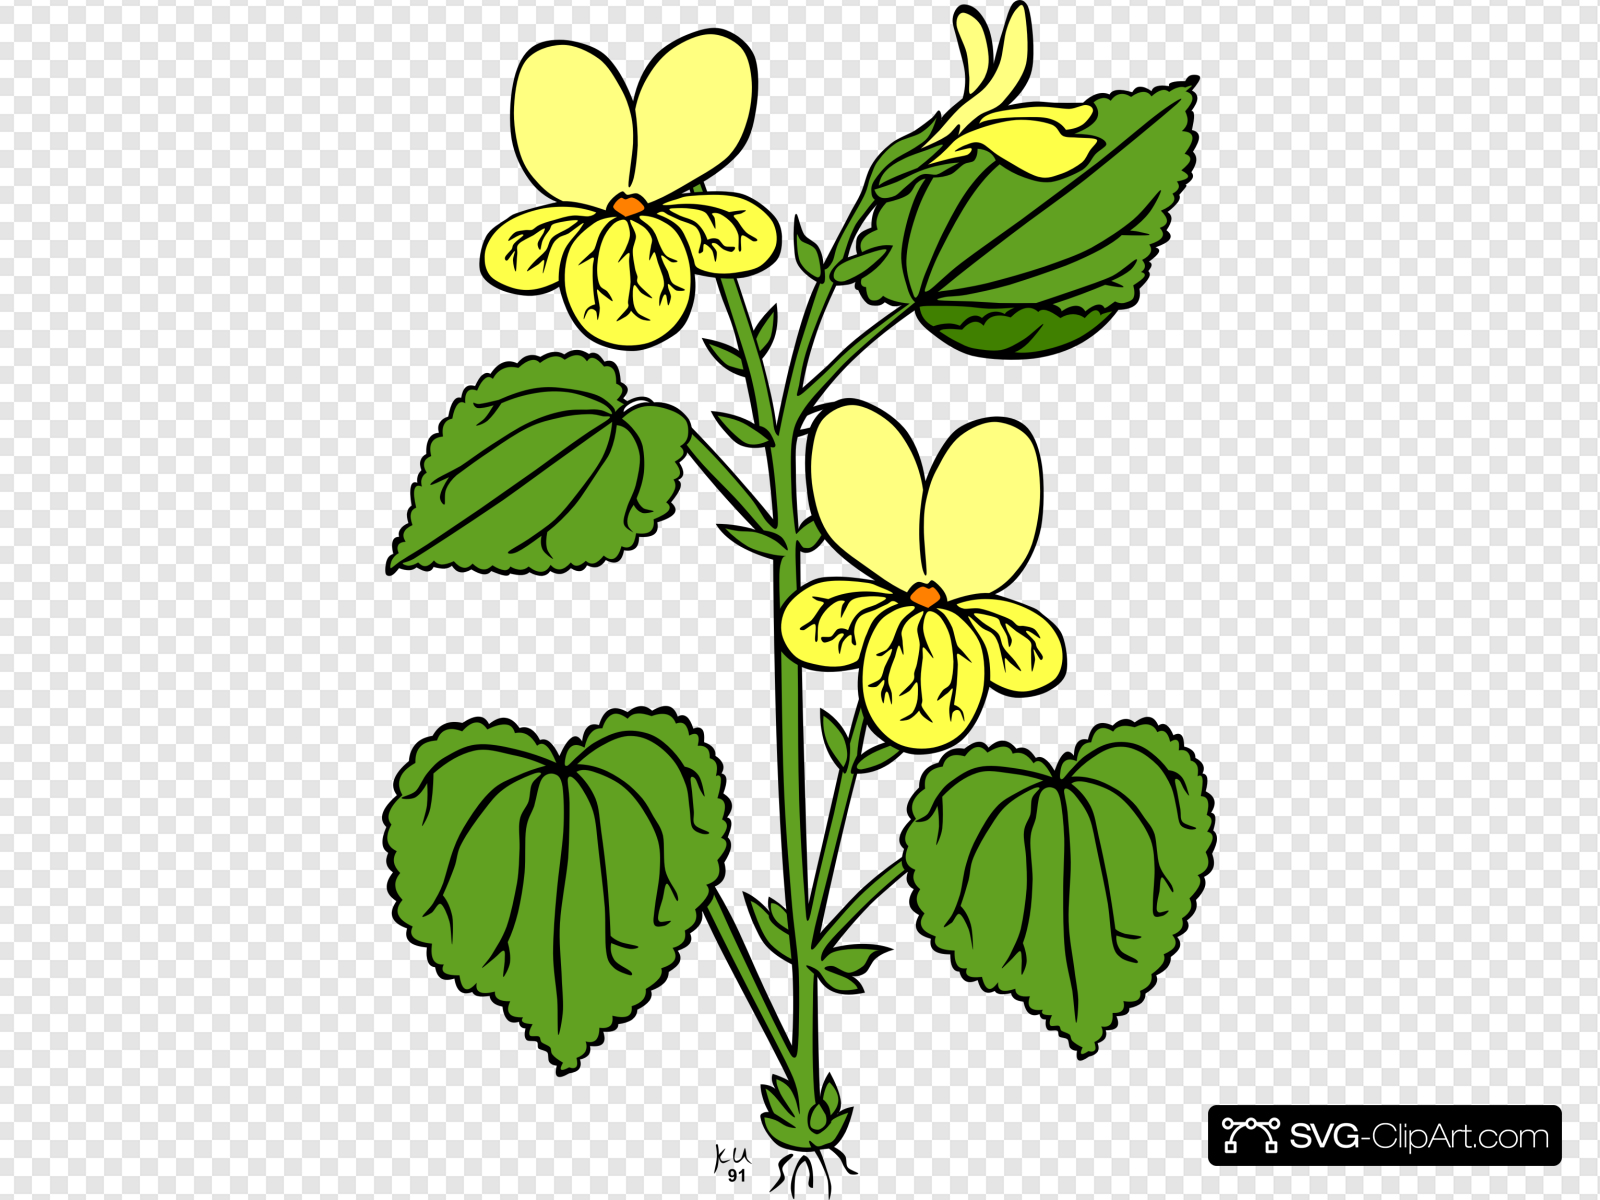 Floral Plant With Green Leaves Clip art, Icon and SVG.